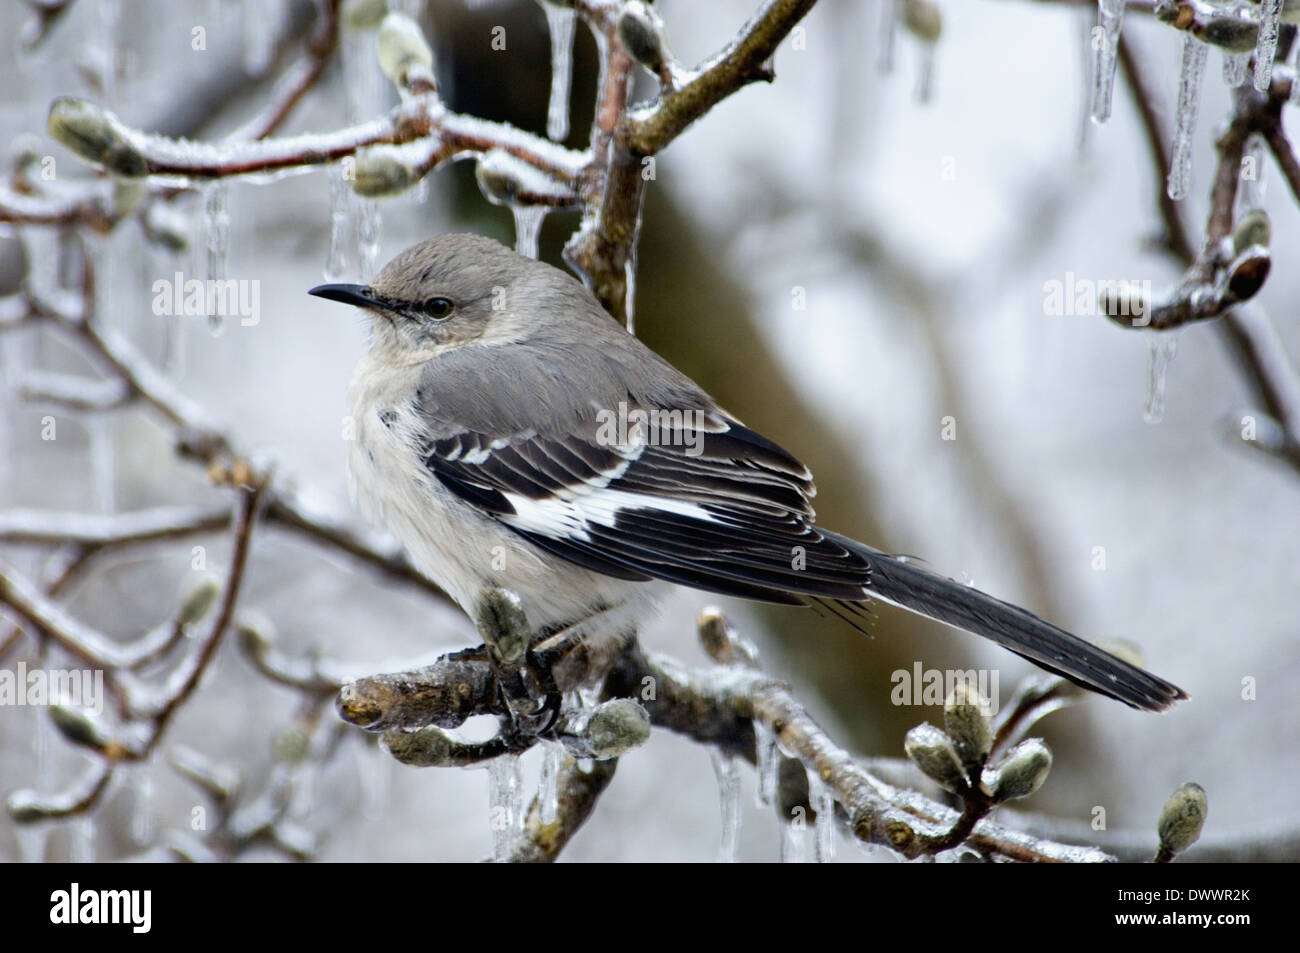 Northern Mockingbird Perched on Ice Encrusted Star Magnolia Branch Stock Photo